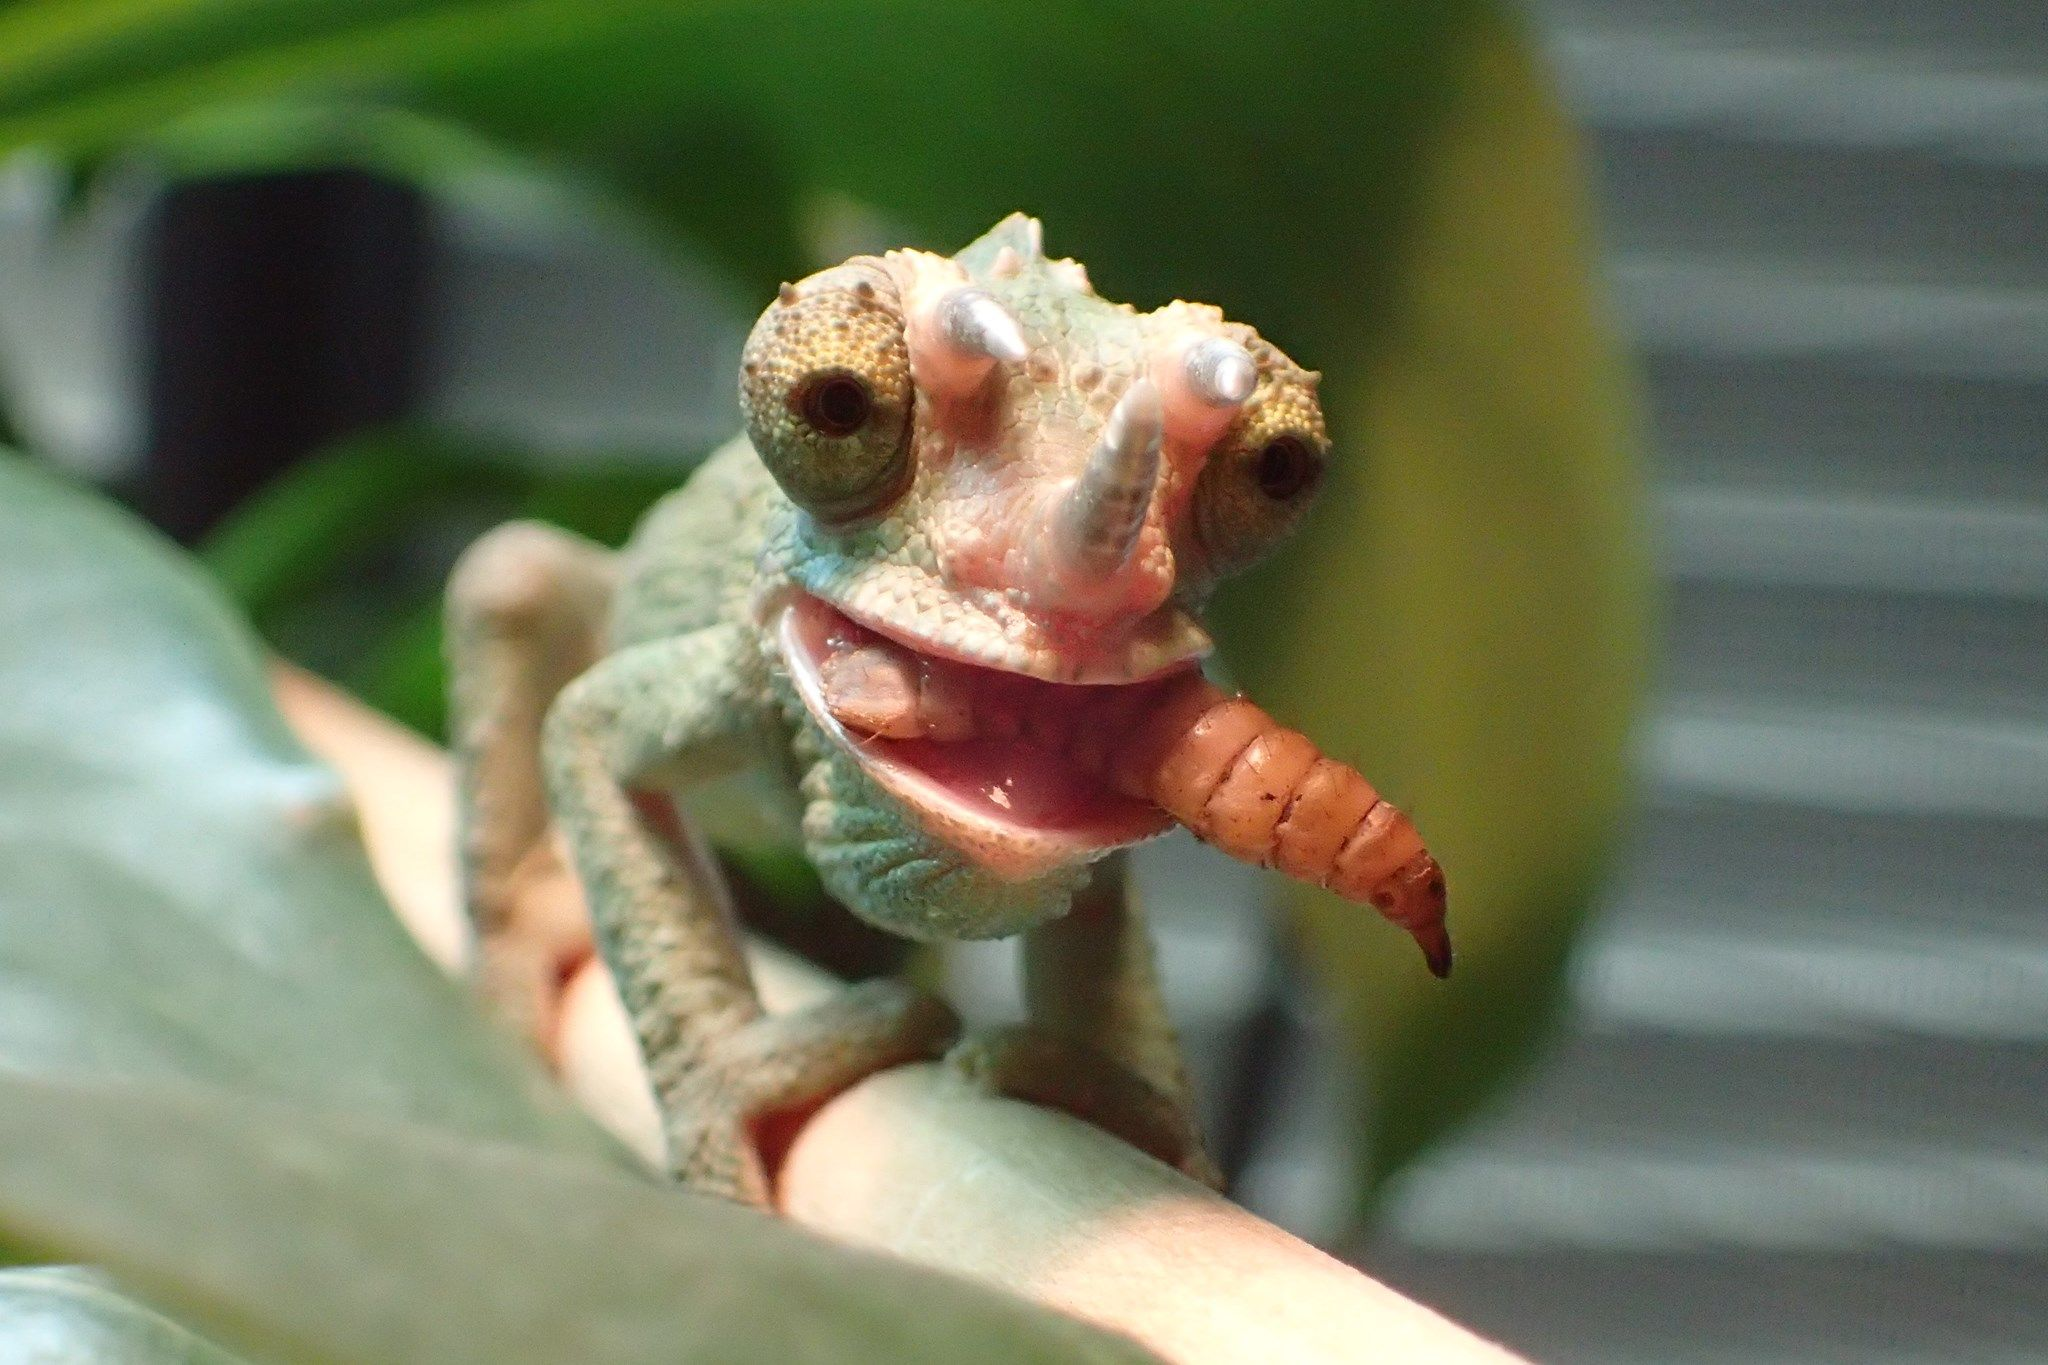 8bab804fb3d408f17ec4e284808d5738 - How To Get A Chameleon To Open Its Mouth